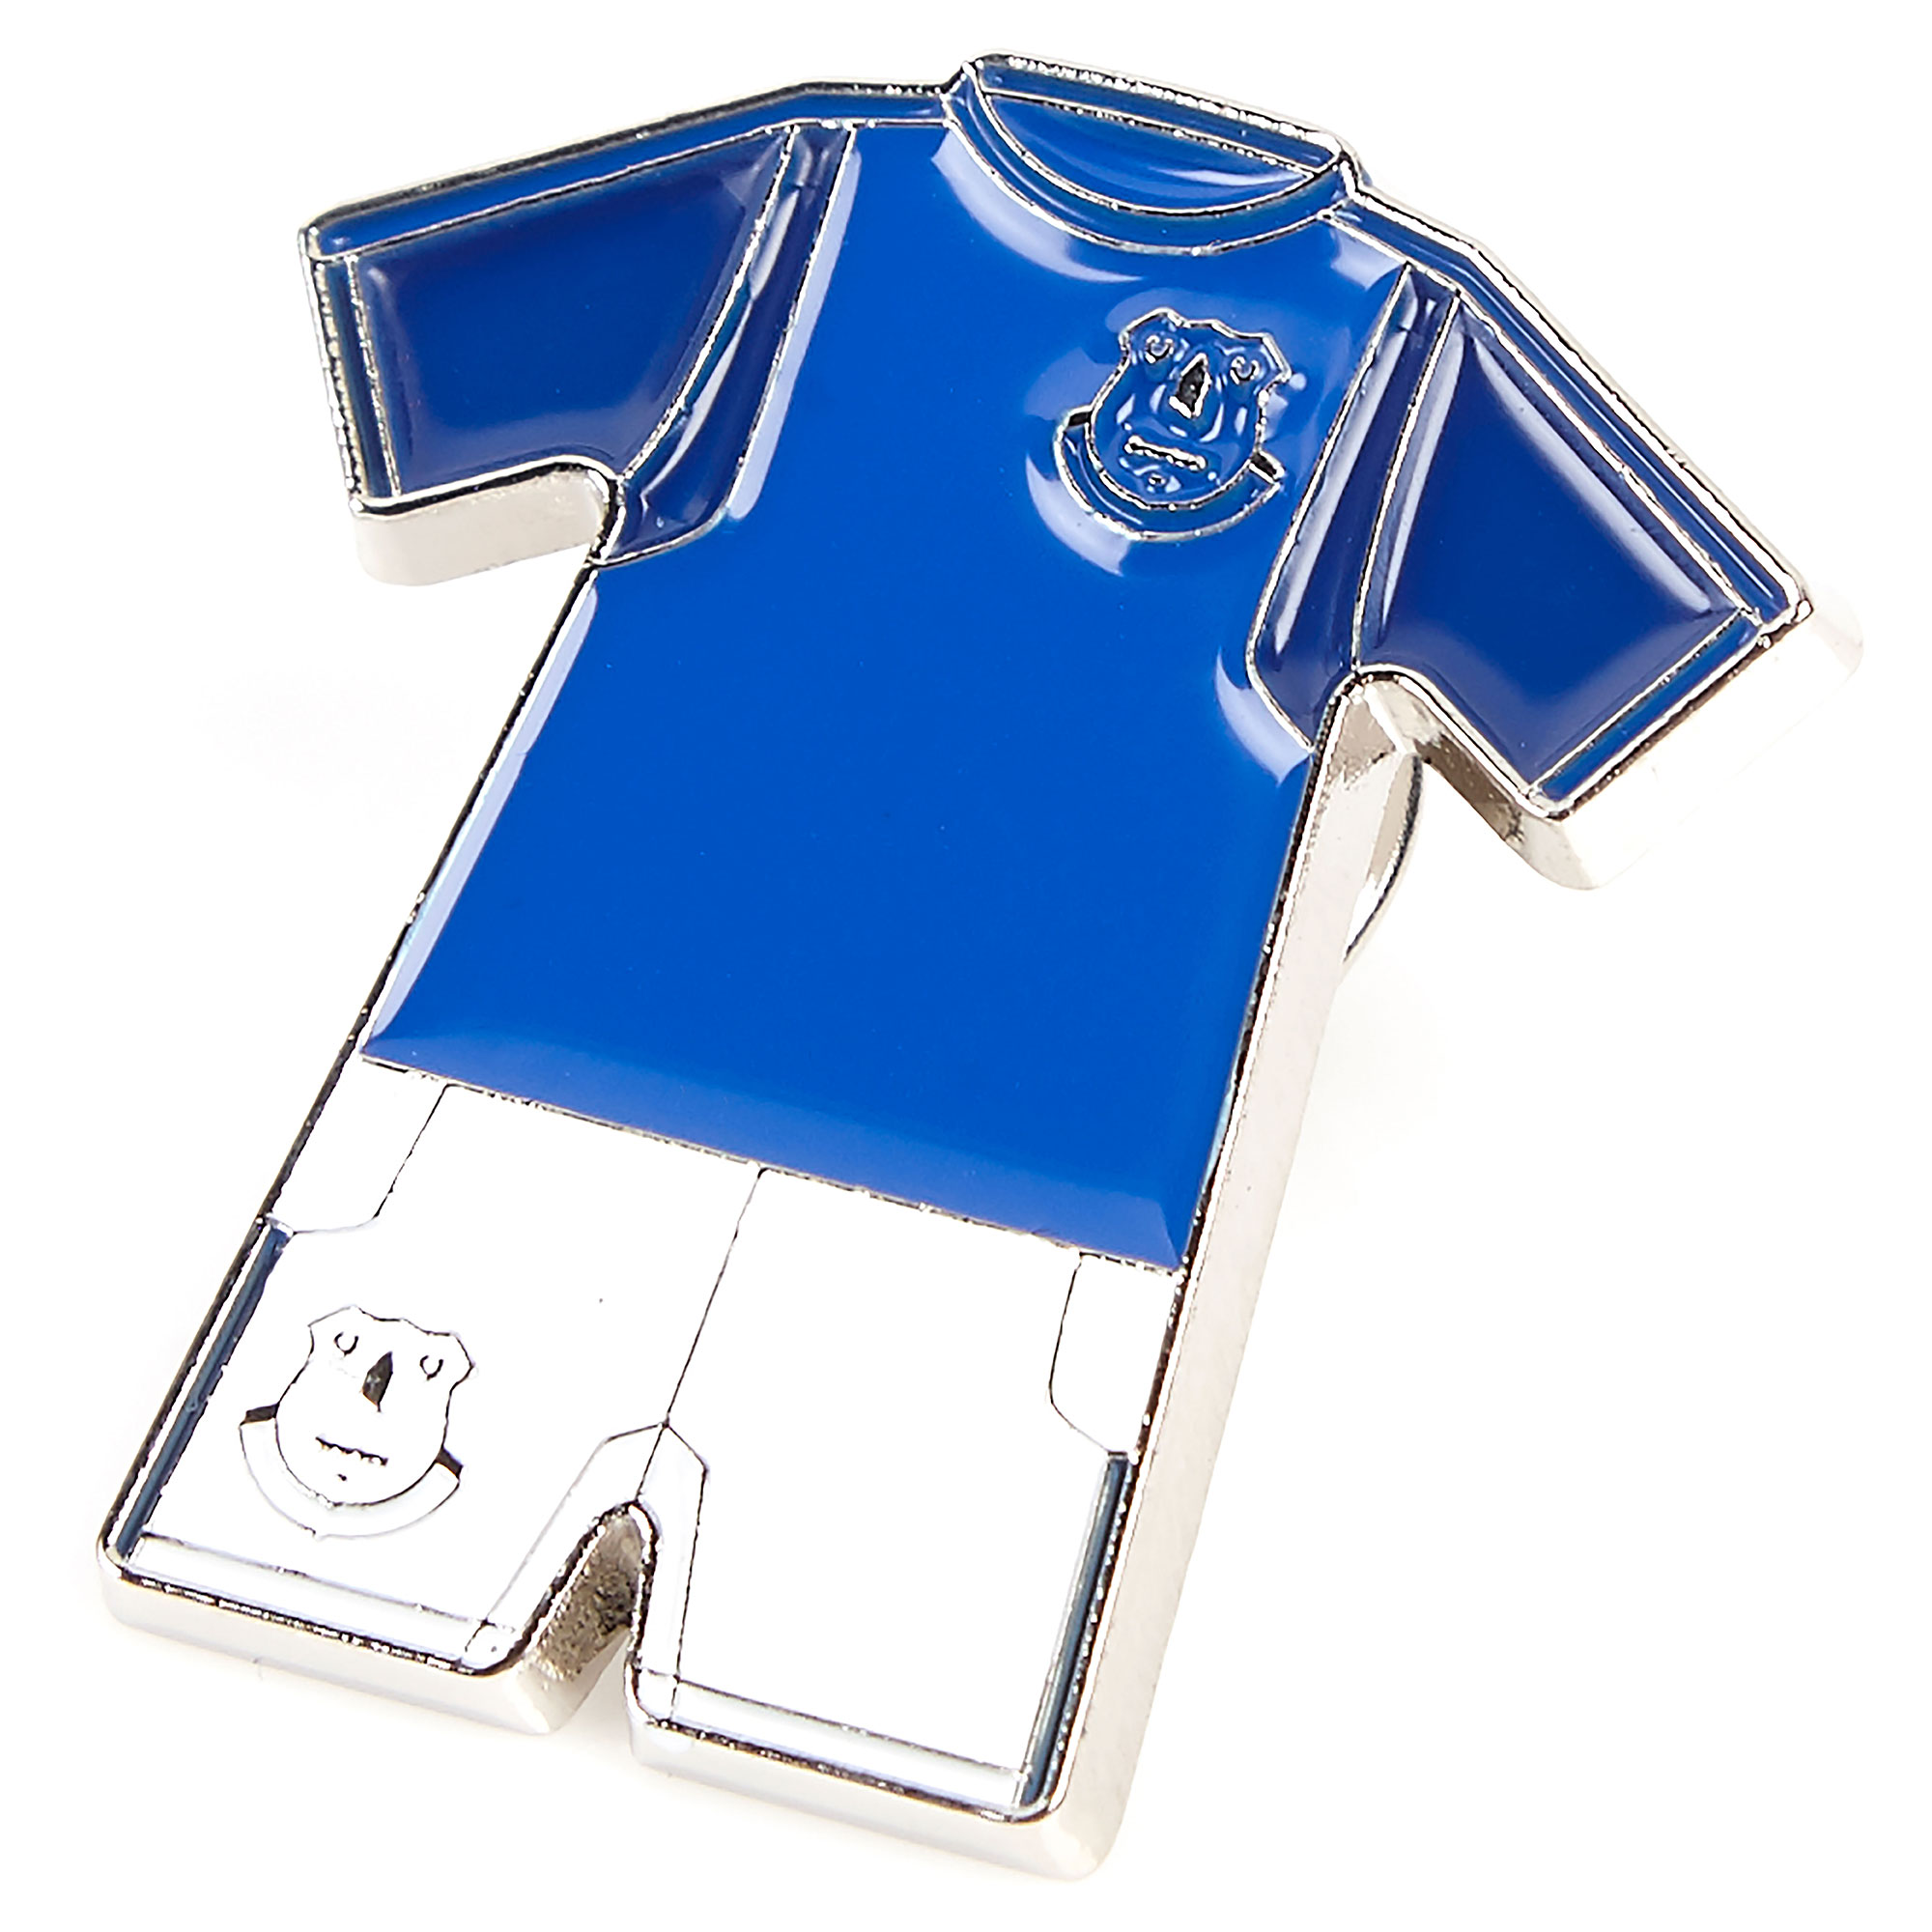 Everton Home Kit Badge 2017/18